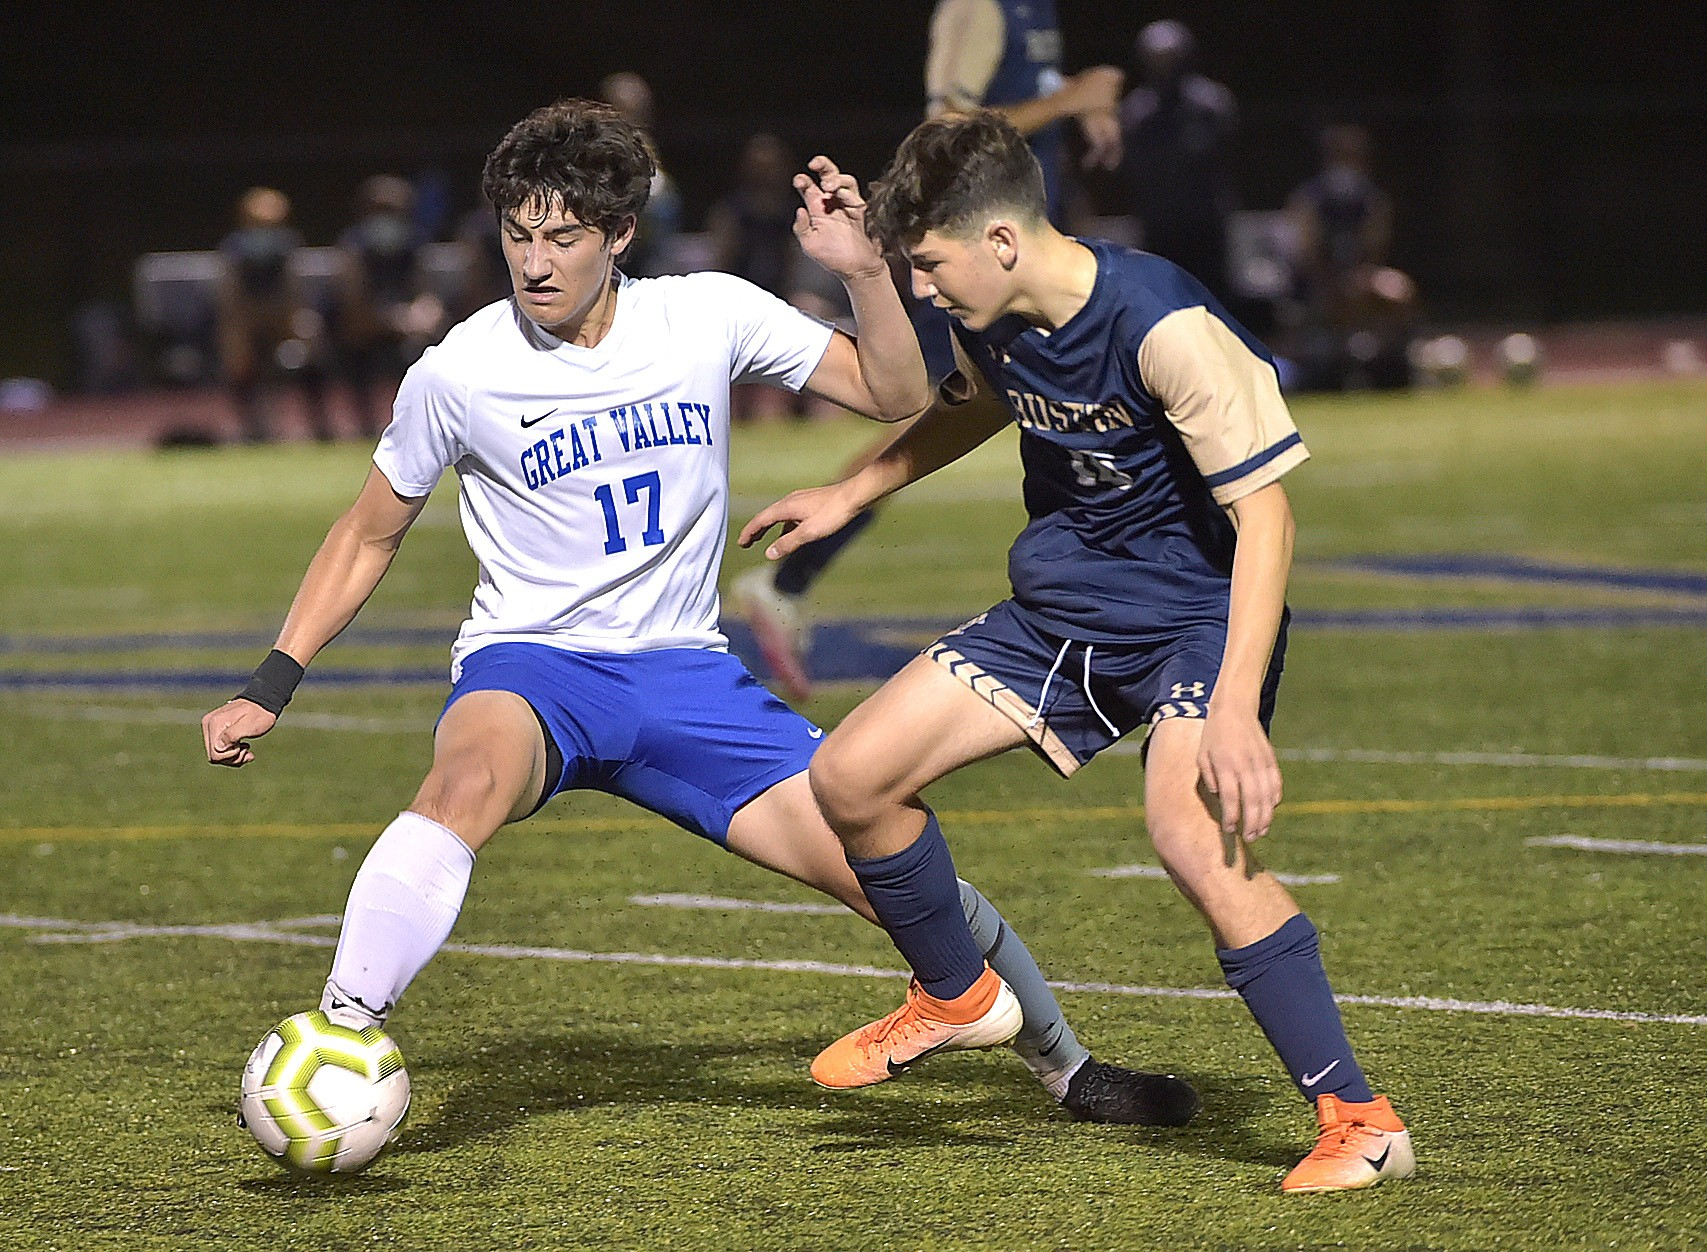 Great Valley's (17) Ethan Pfau and West Chester Rustin (16) Andy Saccomandi battle for a ball at Rustin.